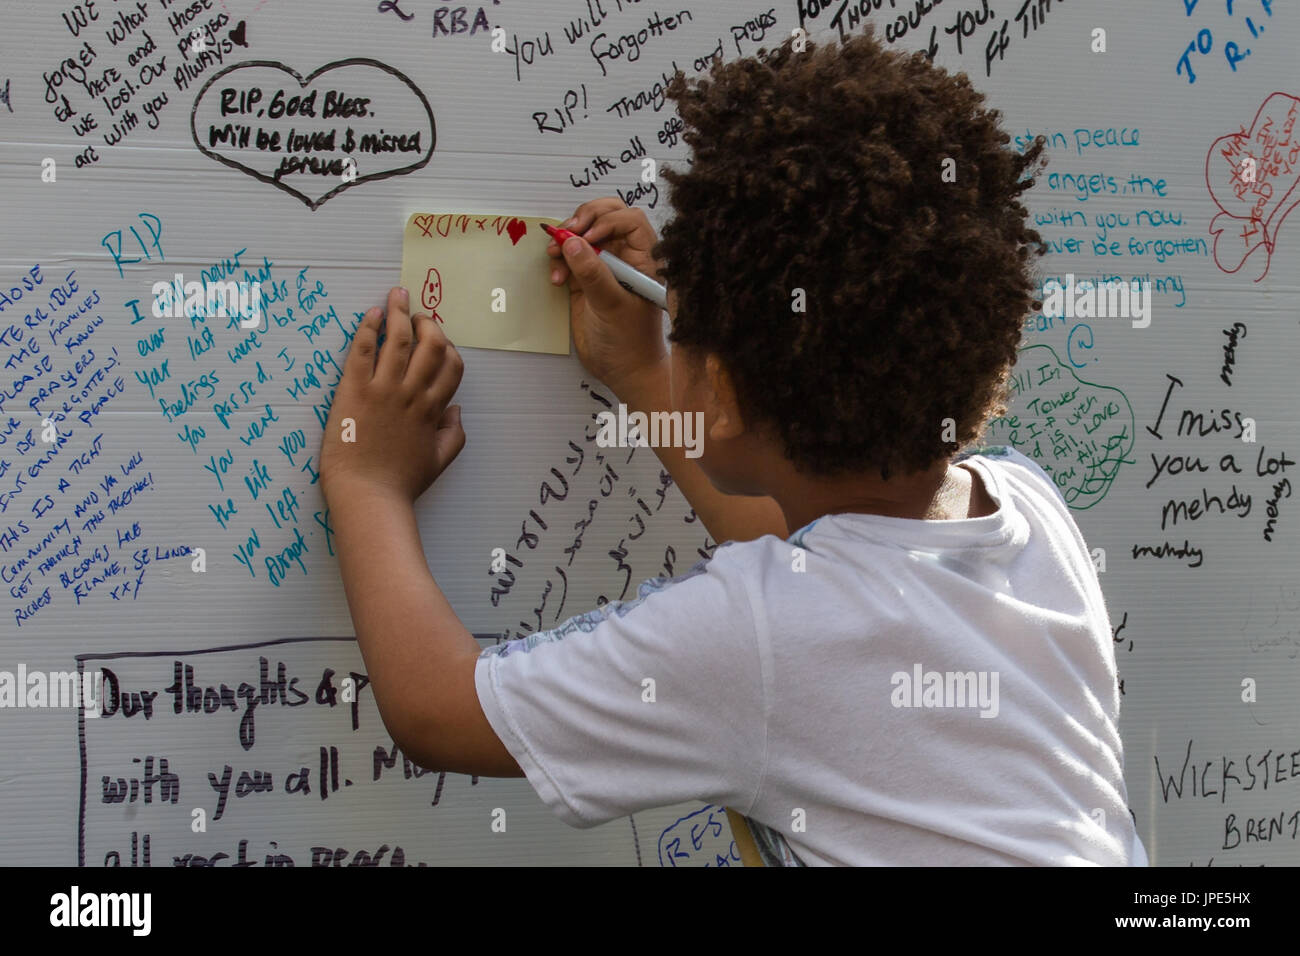 A young boy draws a message on the memorial wall for those who lost their lives in the Grenfell Tower fire. - Stock Image